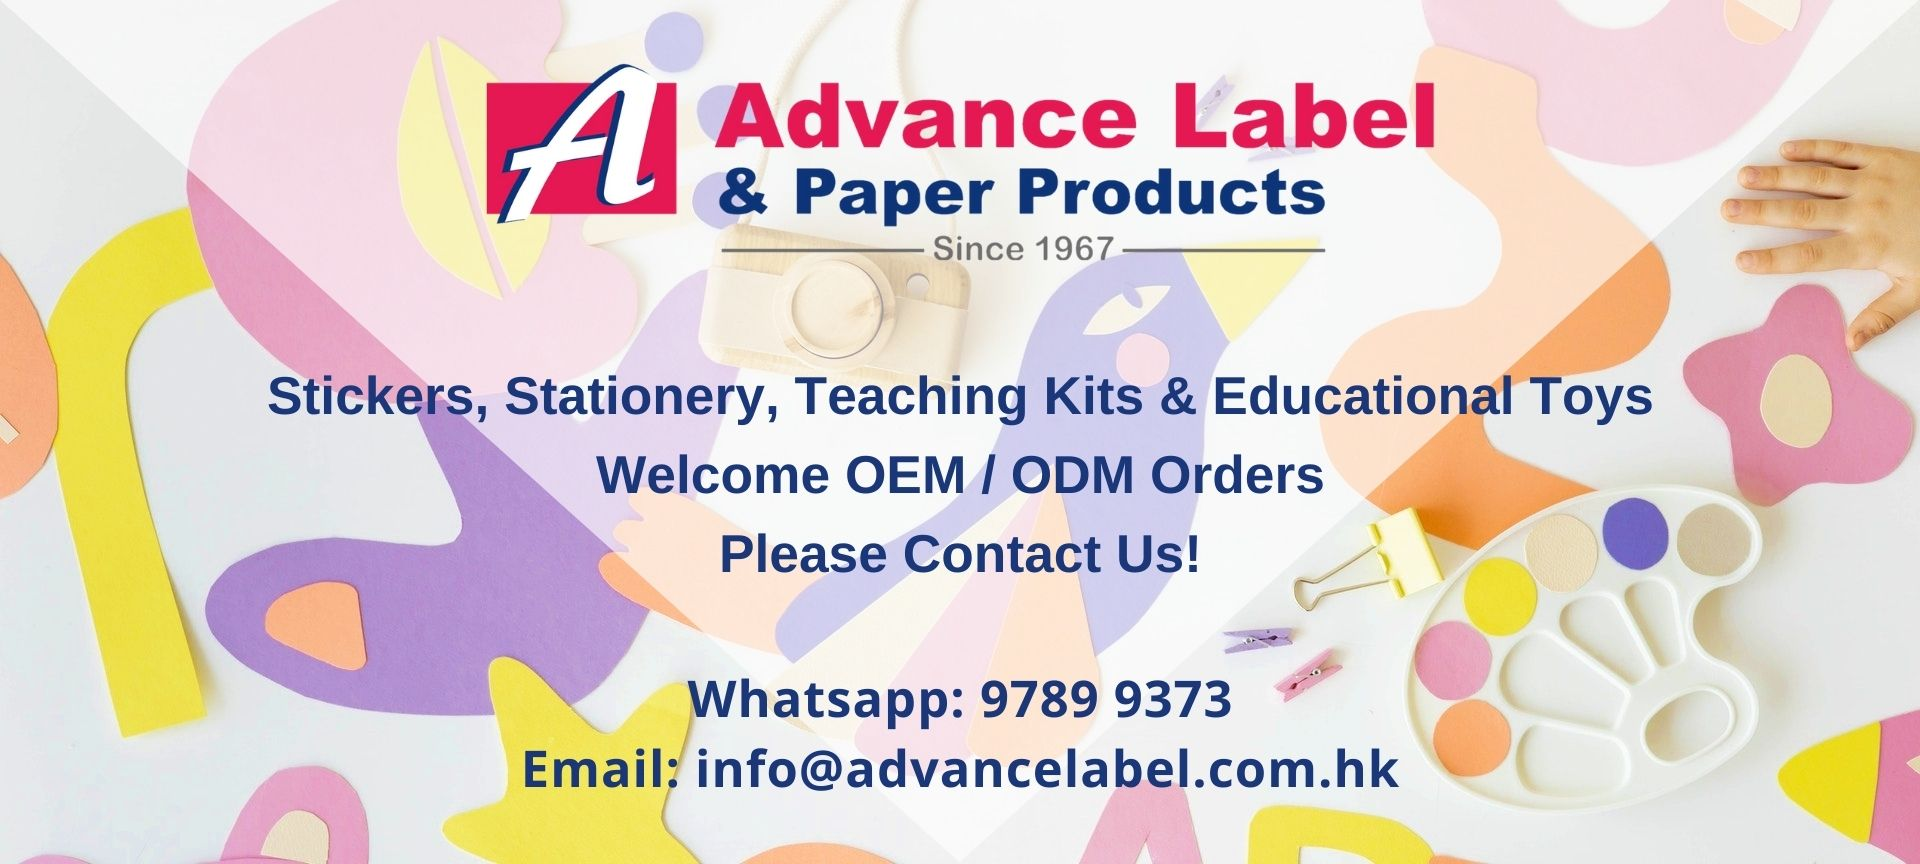 OEM & ODM Stickers, Stationery, Teaching Kits & Educational Toys